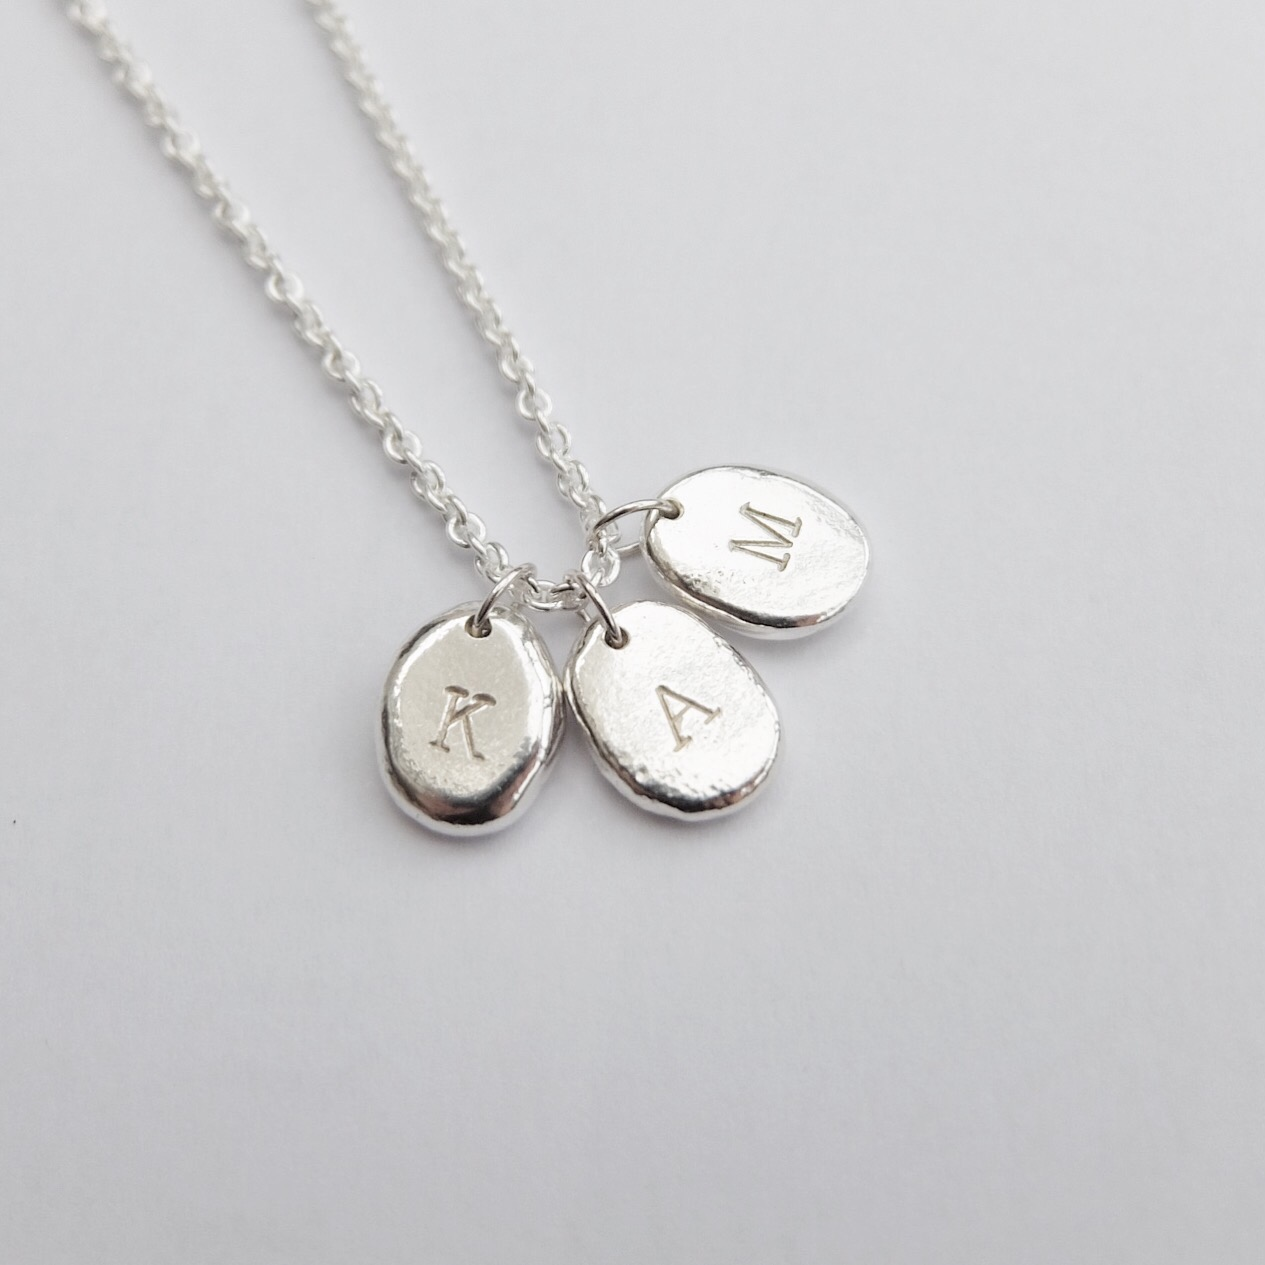 initial necklace gifts for nan gifts for mum letter pendant jewellery necklace silver handmade jasmine bowden uk devon letter stamped .jpg